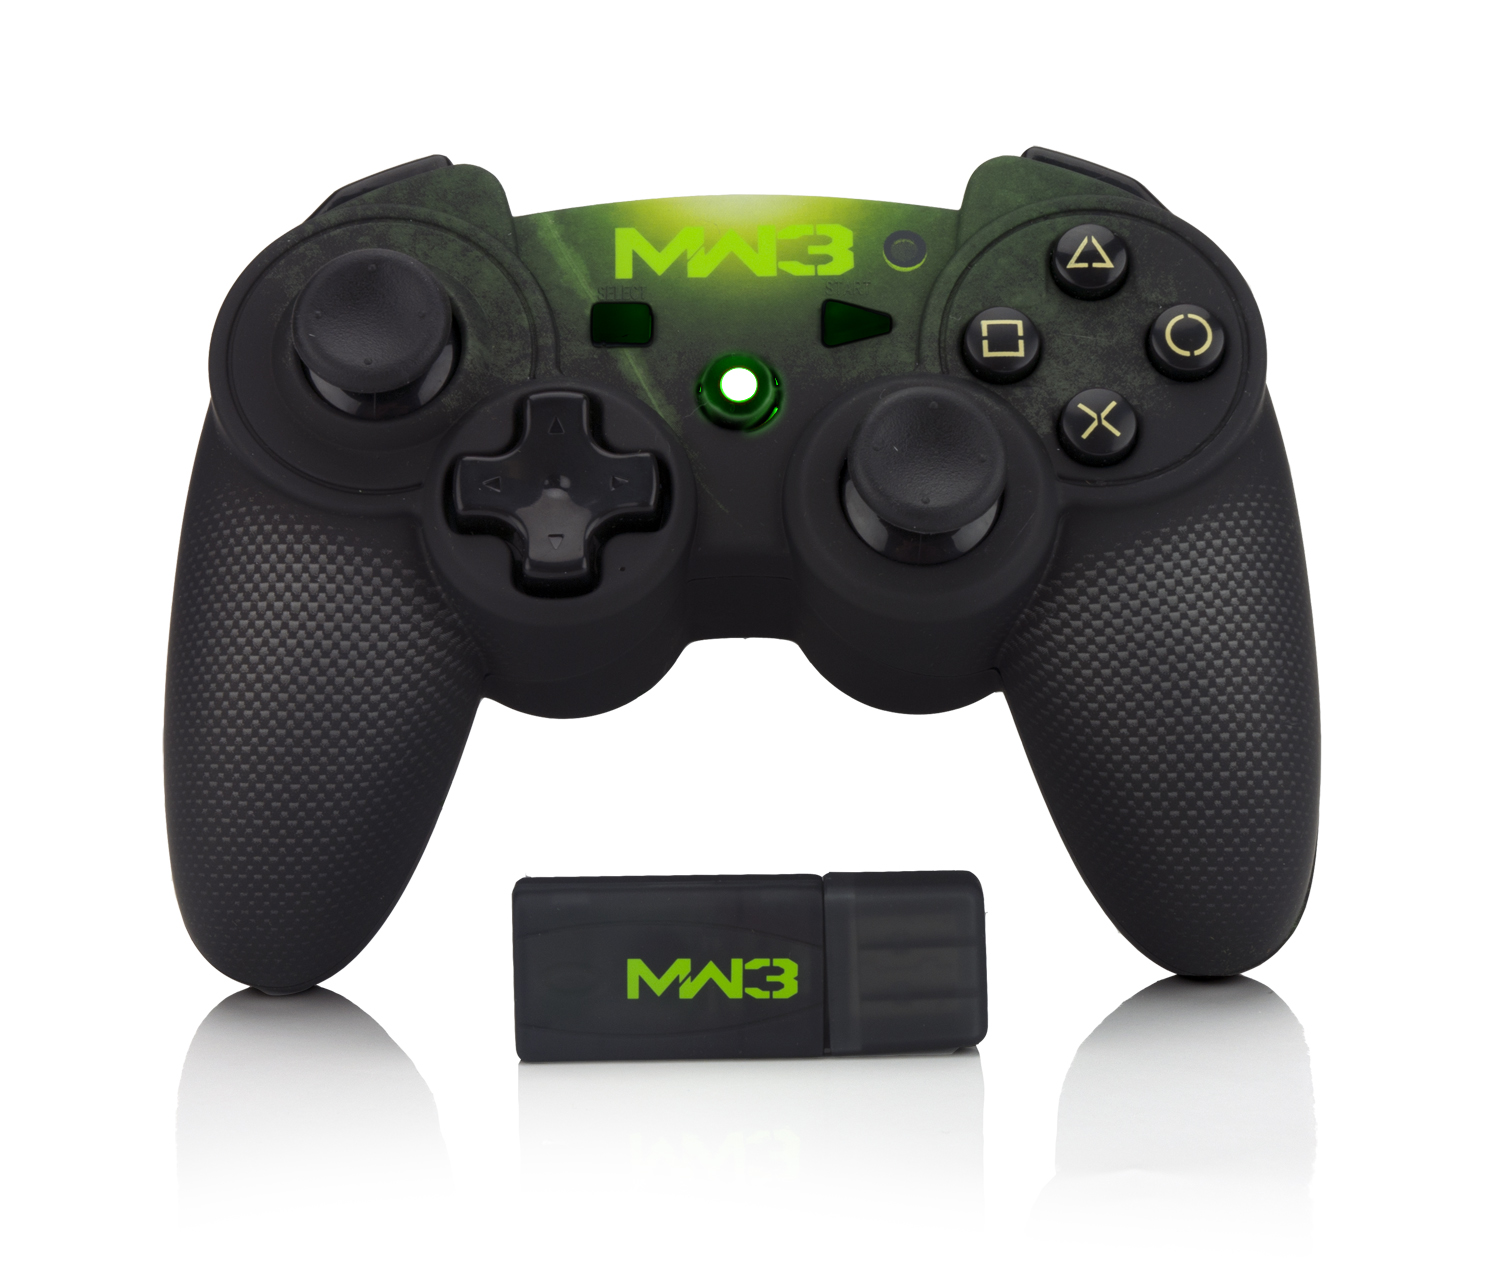 Pdp Announces Limited Edition Game Hardware For Modern Warfare 3